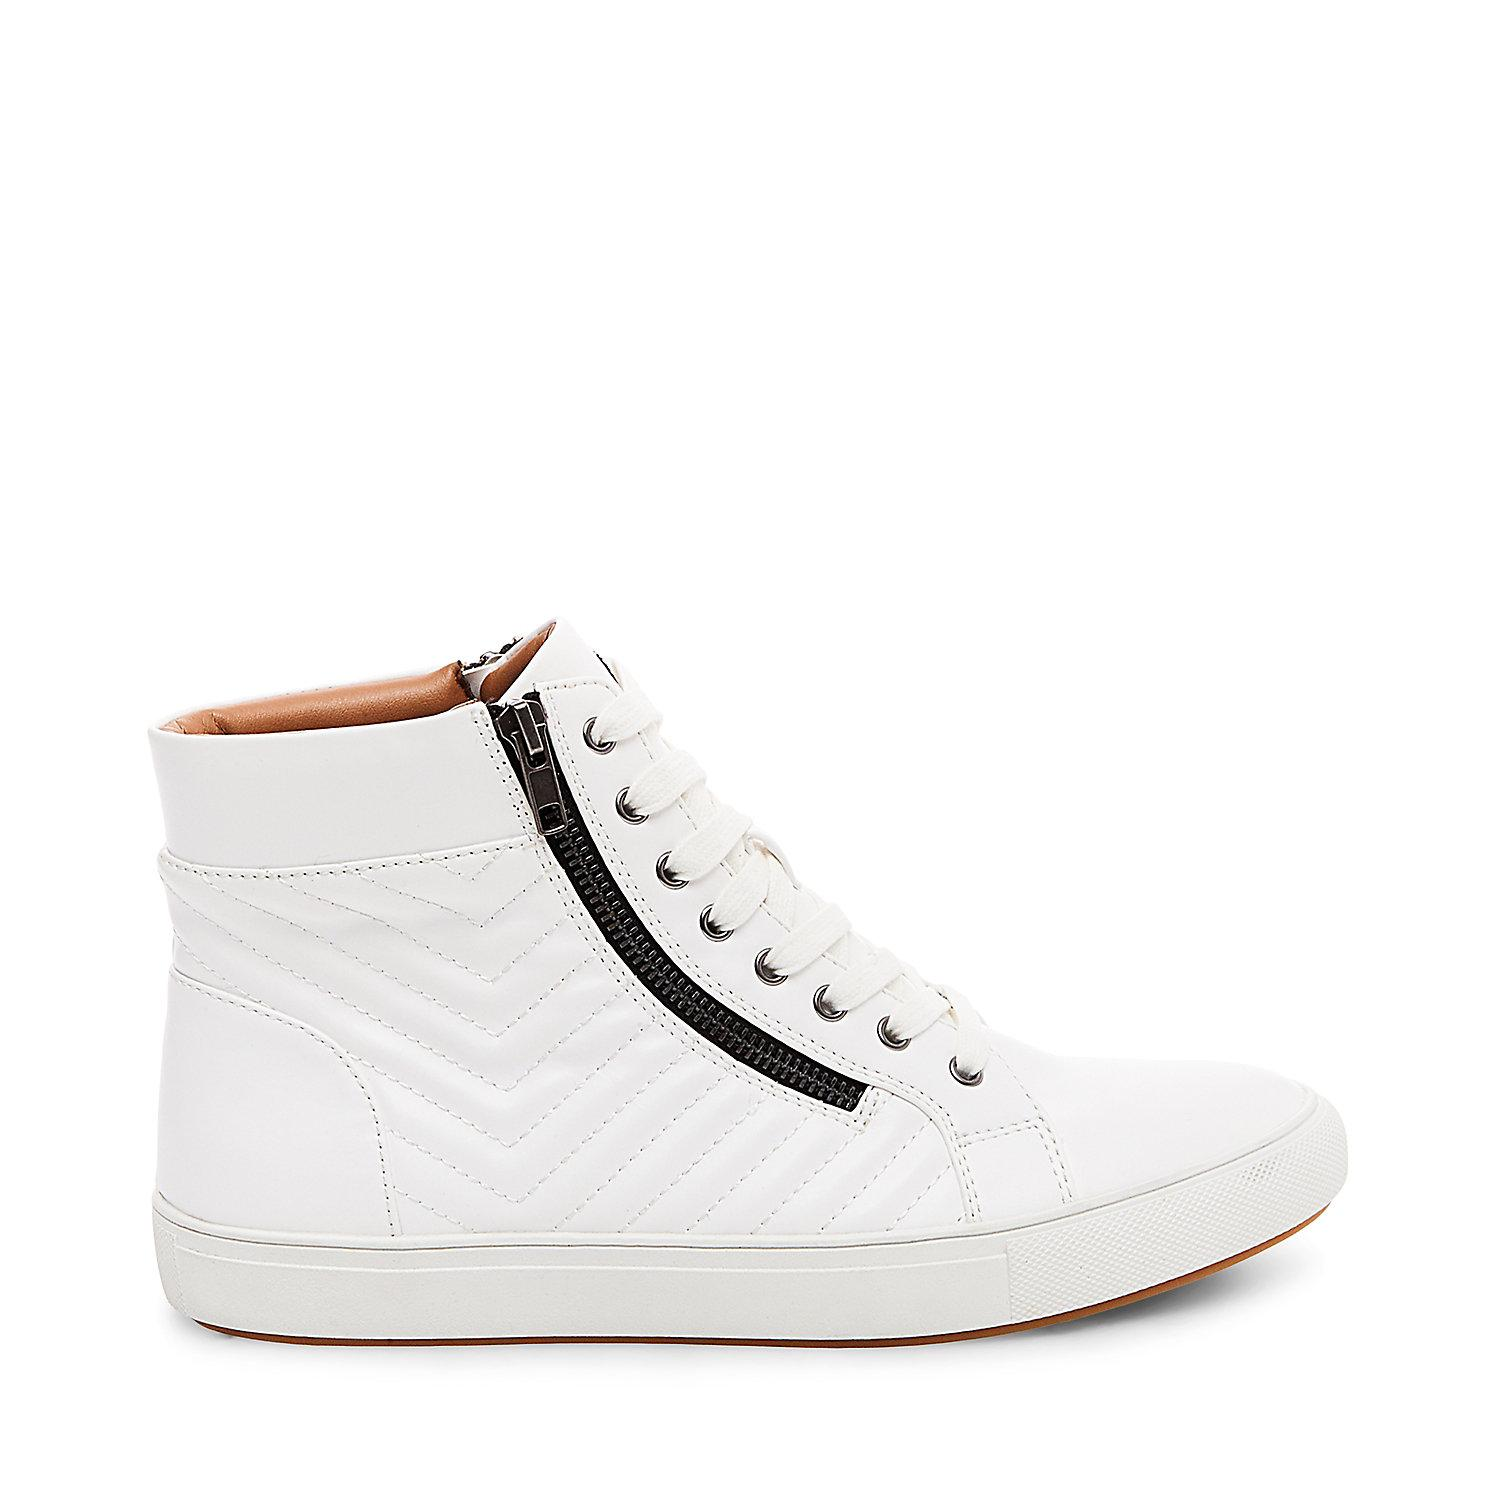 6f2783644a8 Lyst - Steve Madden Punted in White